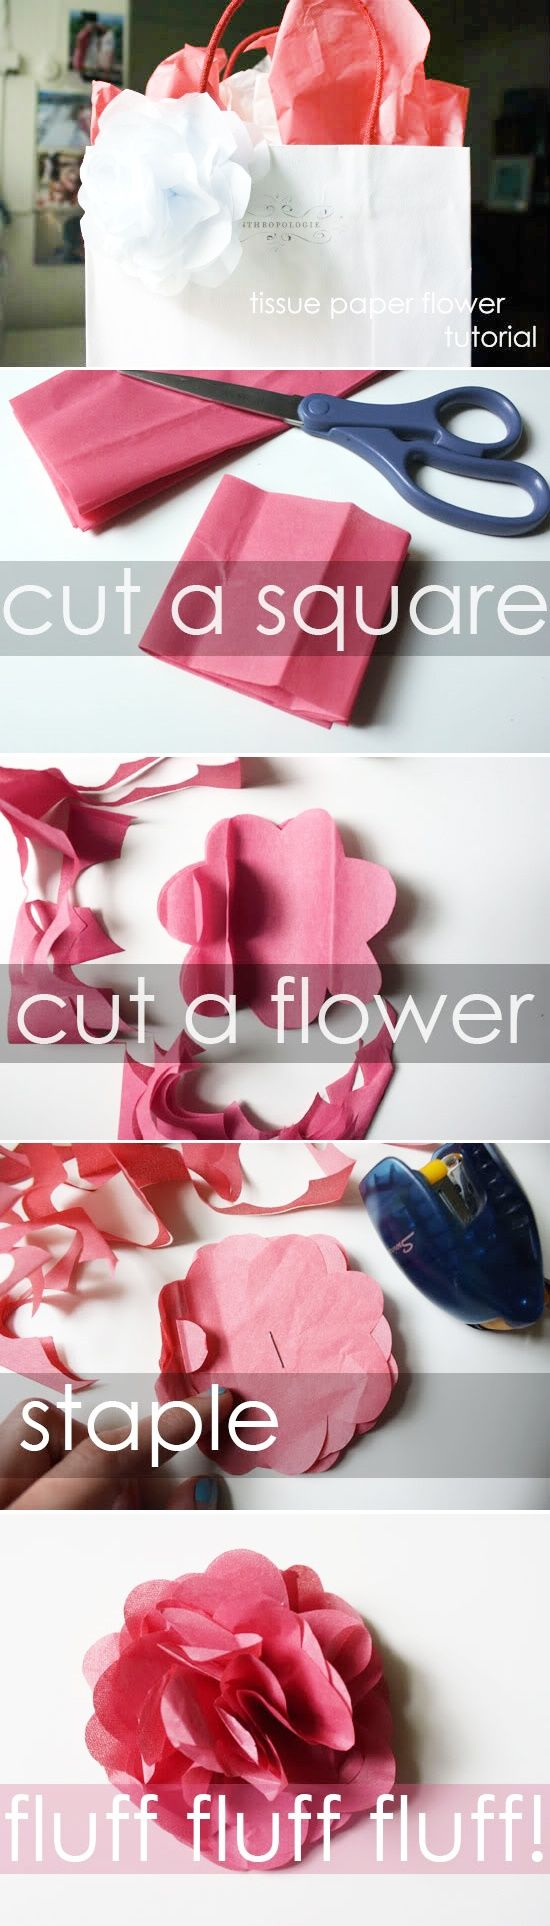 Tissue paper flower - this would be really cute as well if it was multi-colored